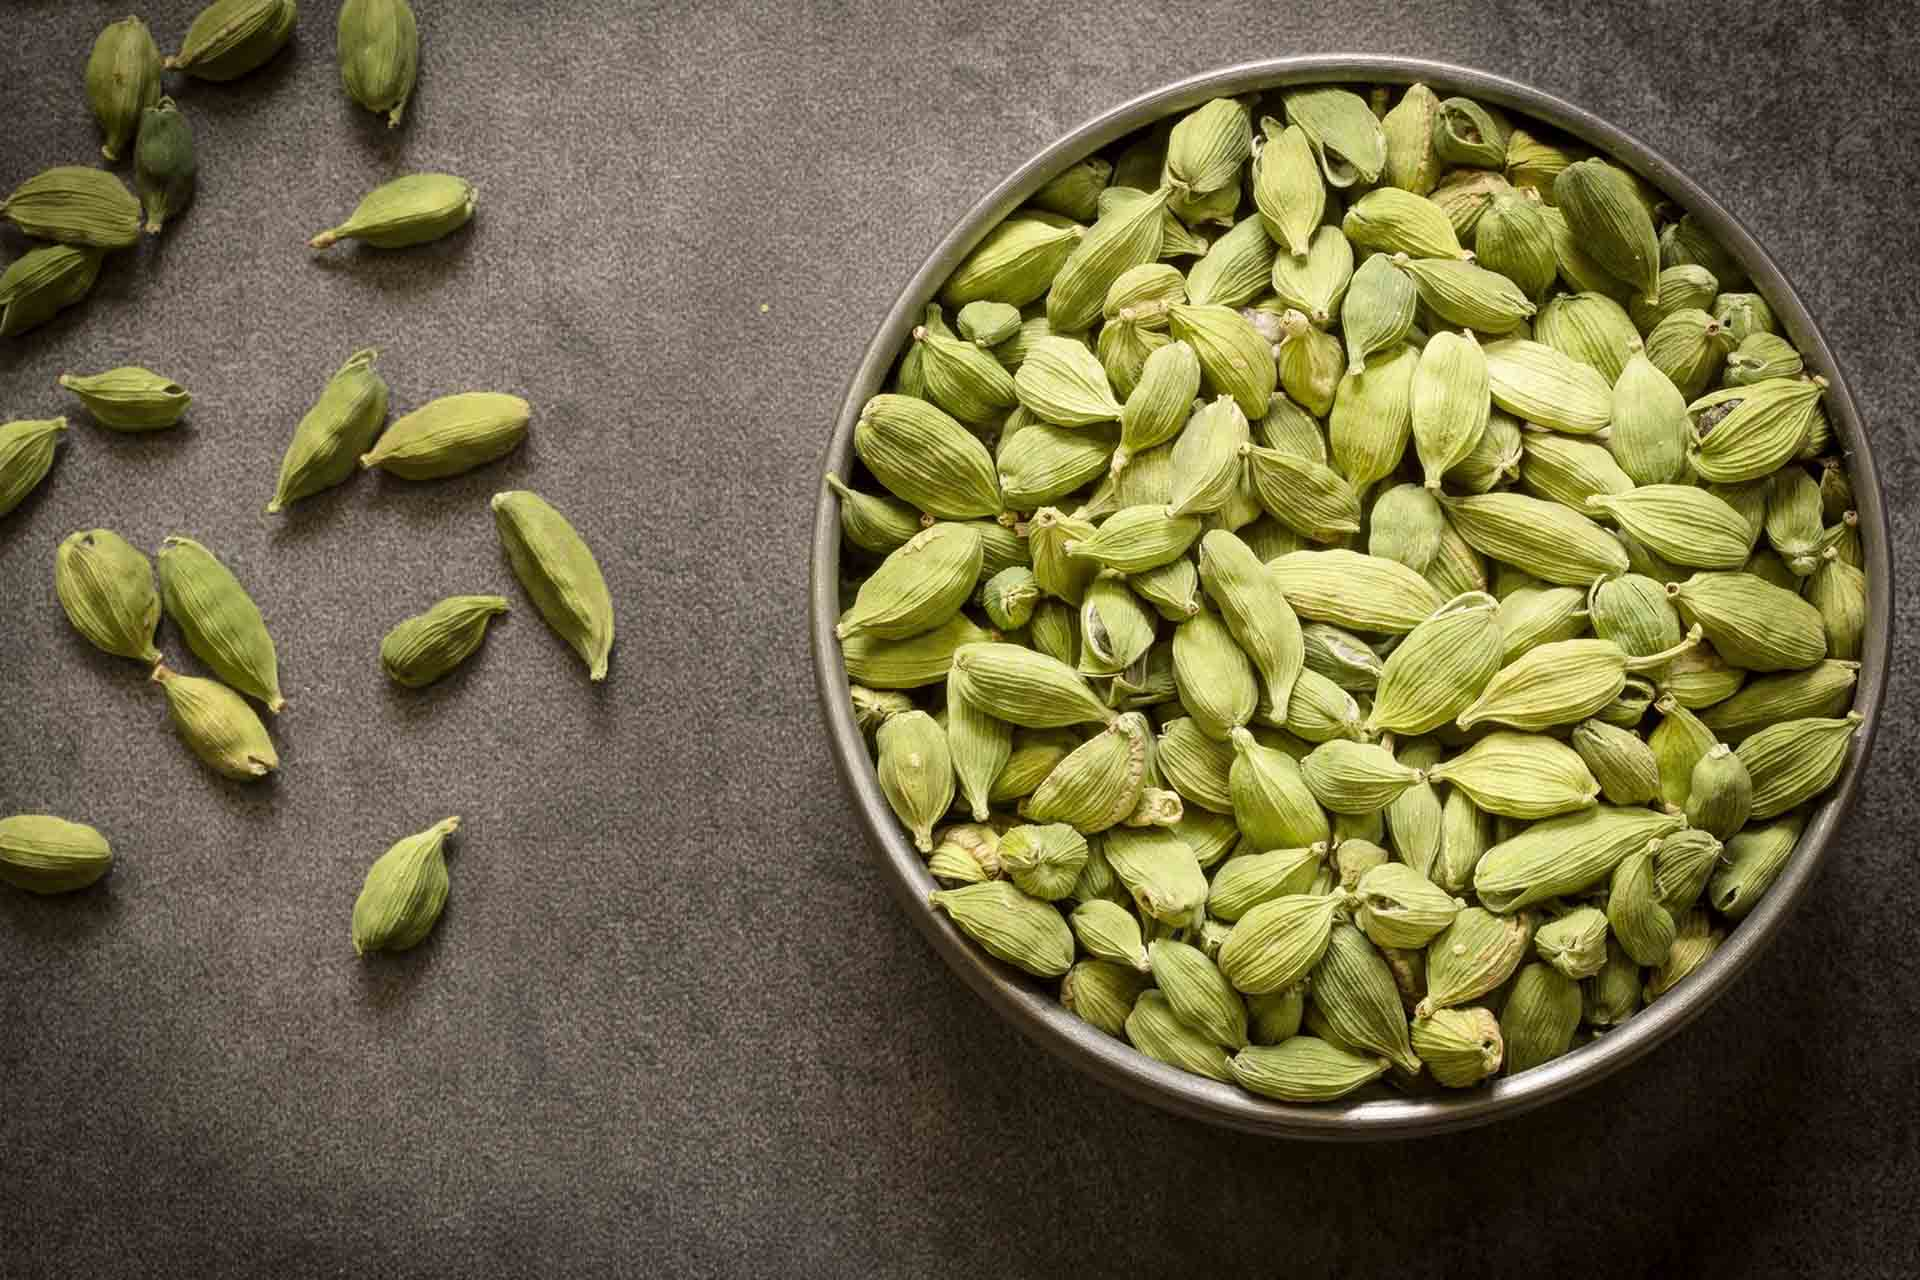 Green cardamom pods in steel bowl with wooden background.